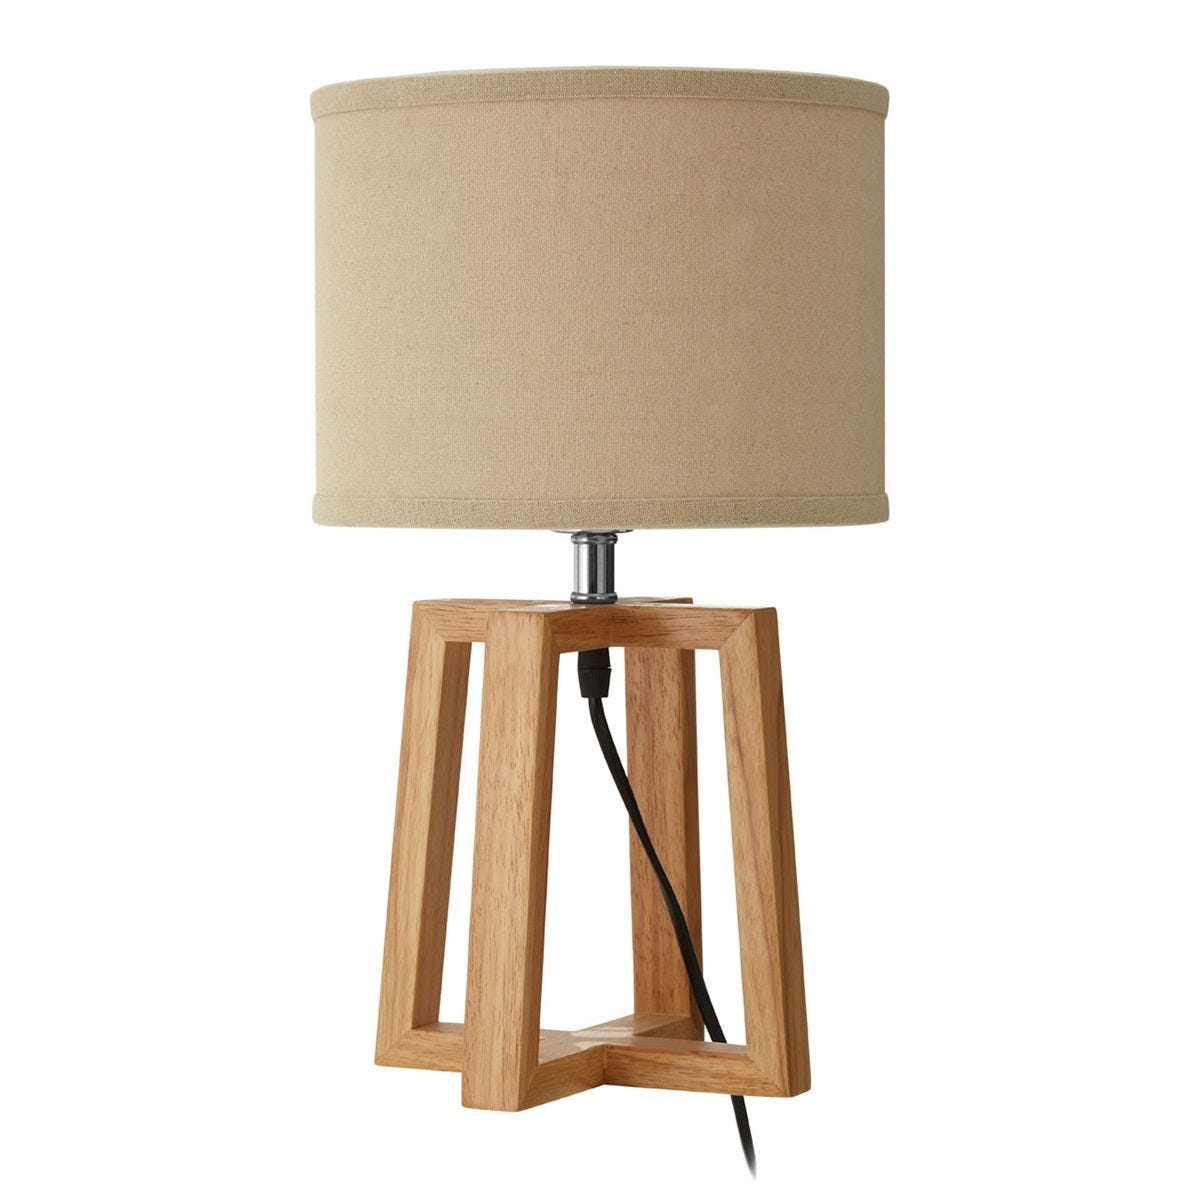 Premier Housewares Lea Table Lamp with Light Brown Fabric Shade